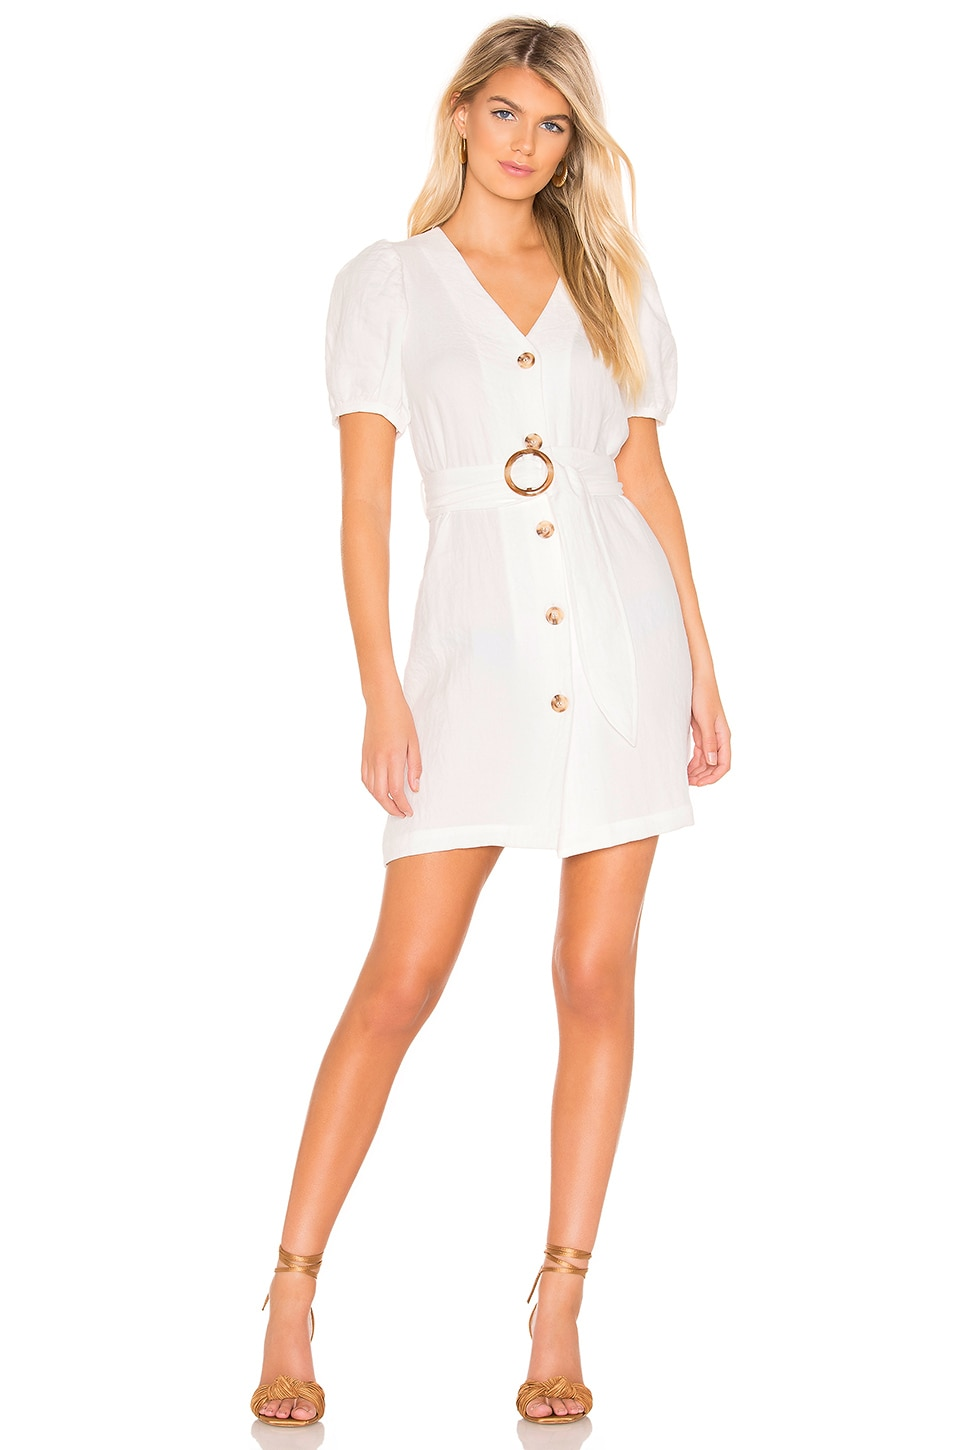 J.o.a. Dresses J.O.A. PUFF SLEEVE DRESS IN OFF WHITE